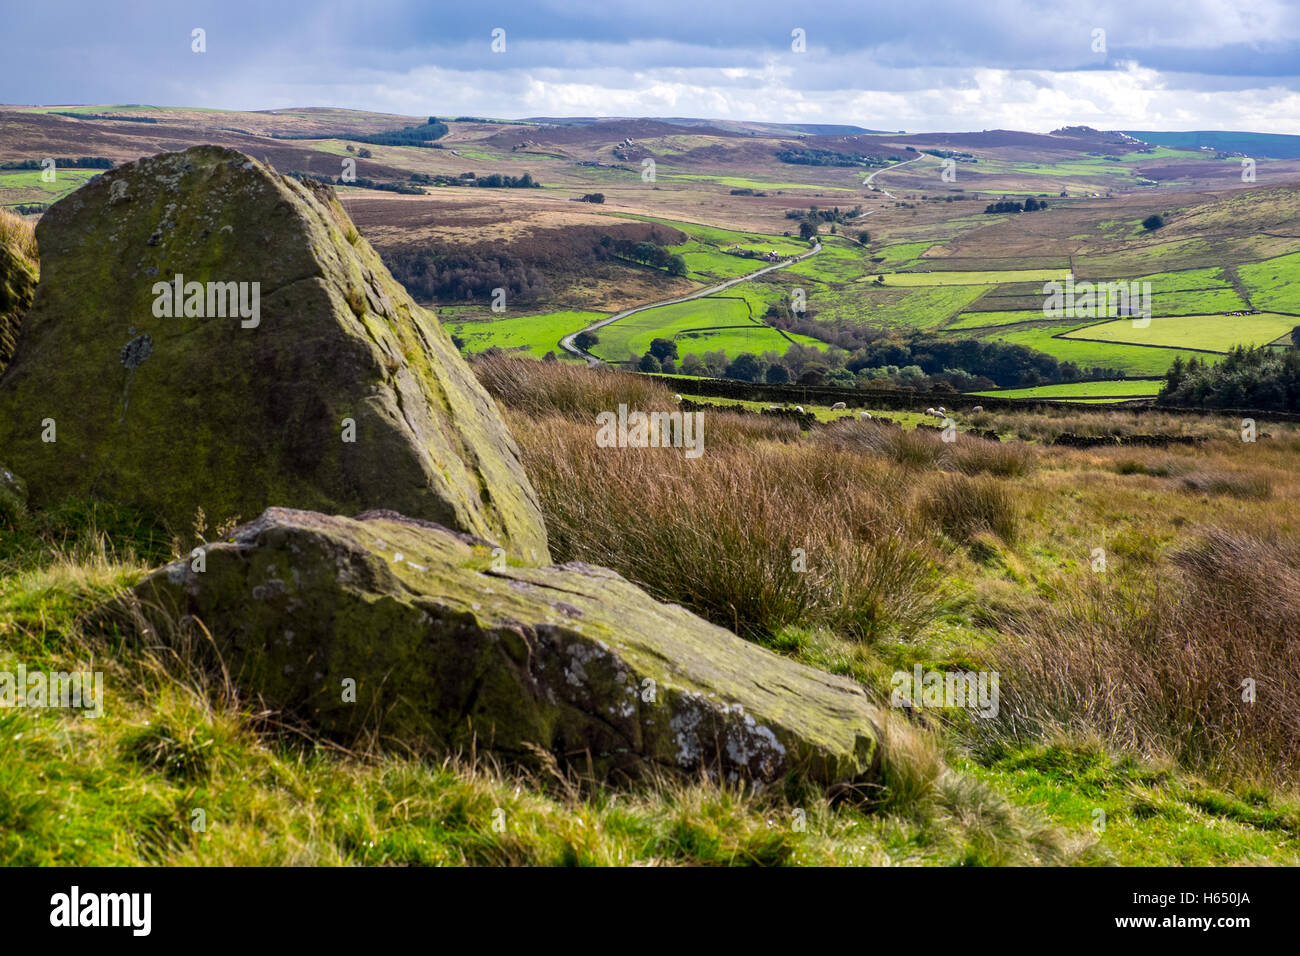 The Staffordshire Moorlands in the Peak District National Park - Stock Image